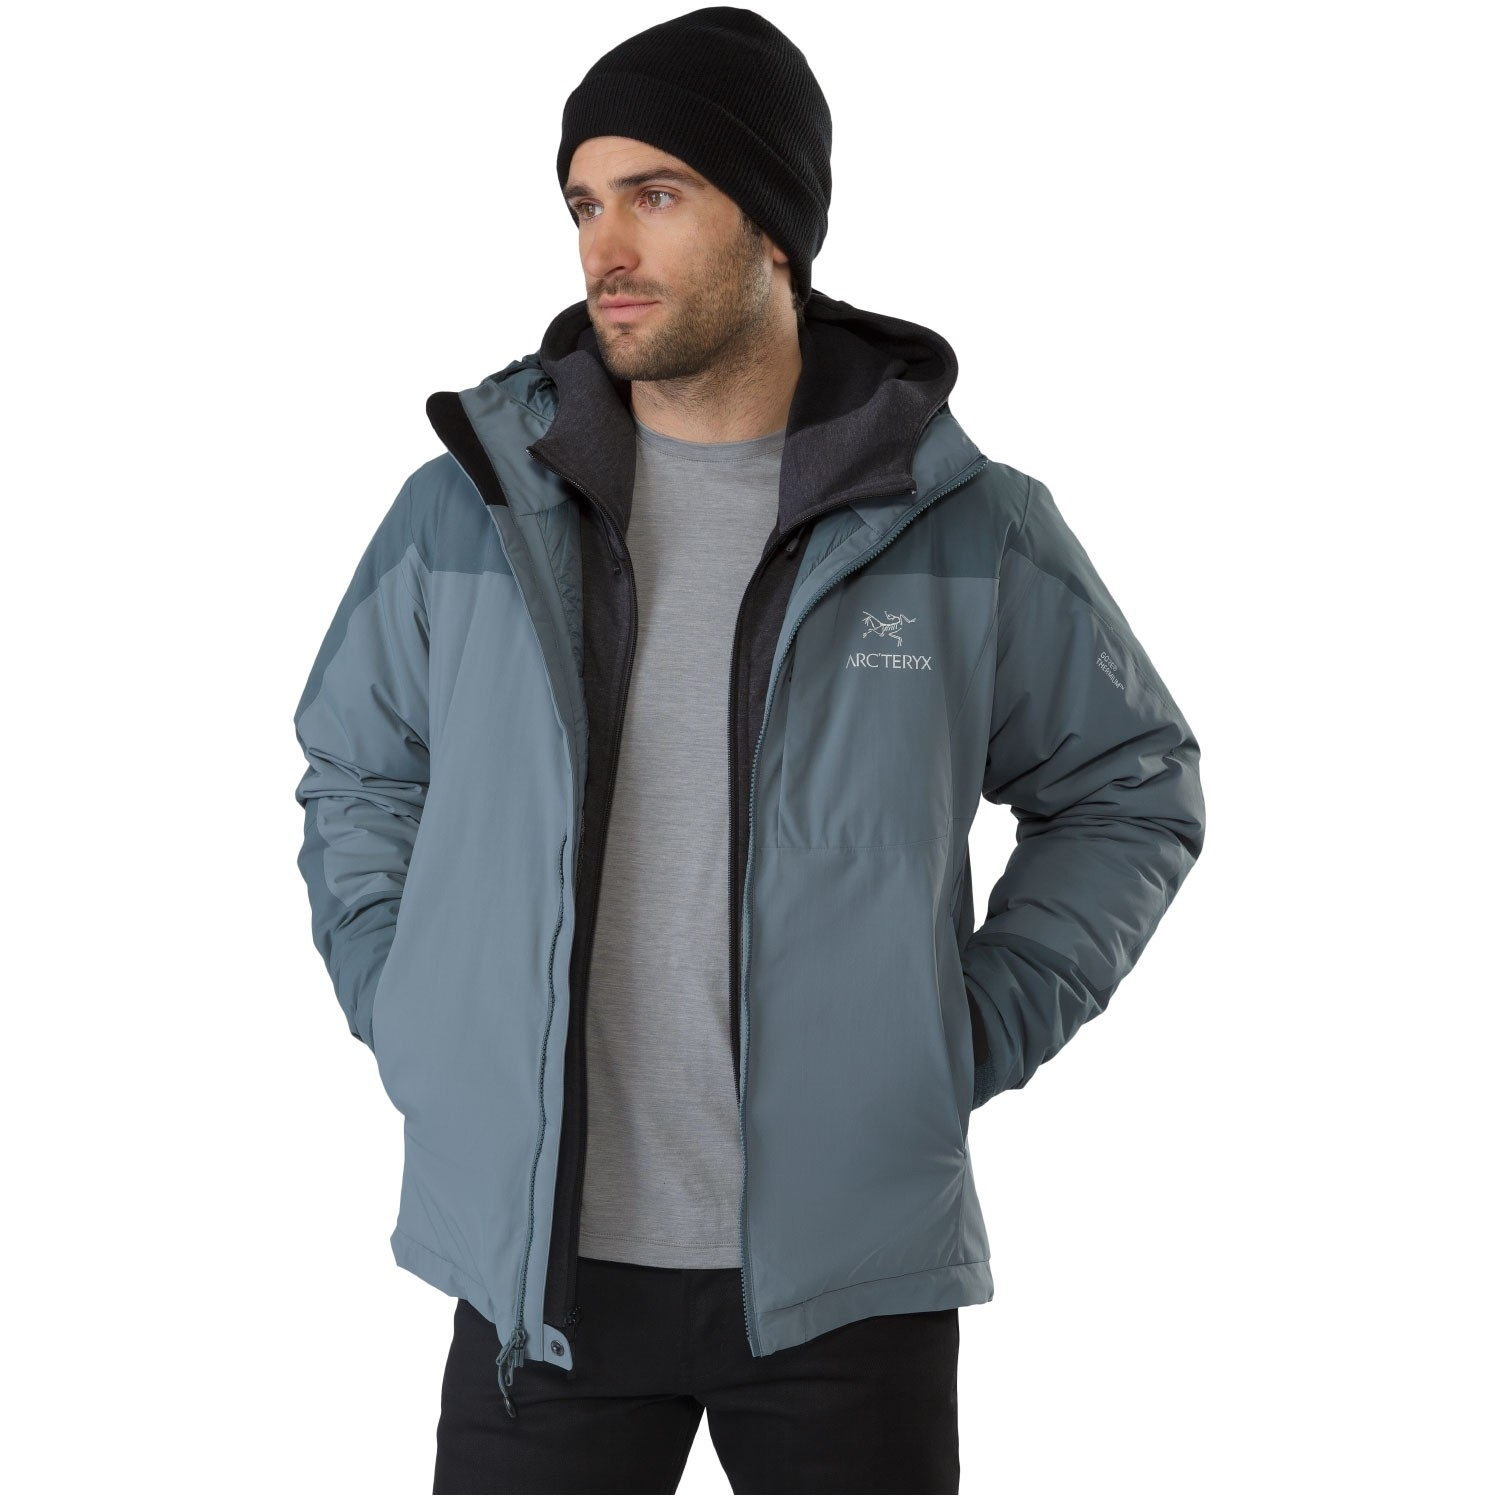 Arc'teryx Kappa Men's Insulated Hoody - Proteus - front view